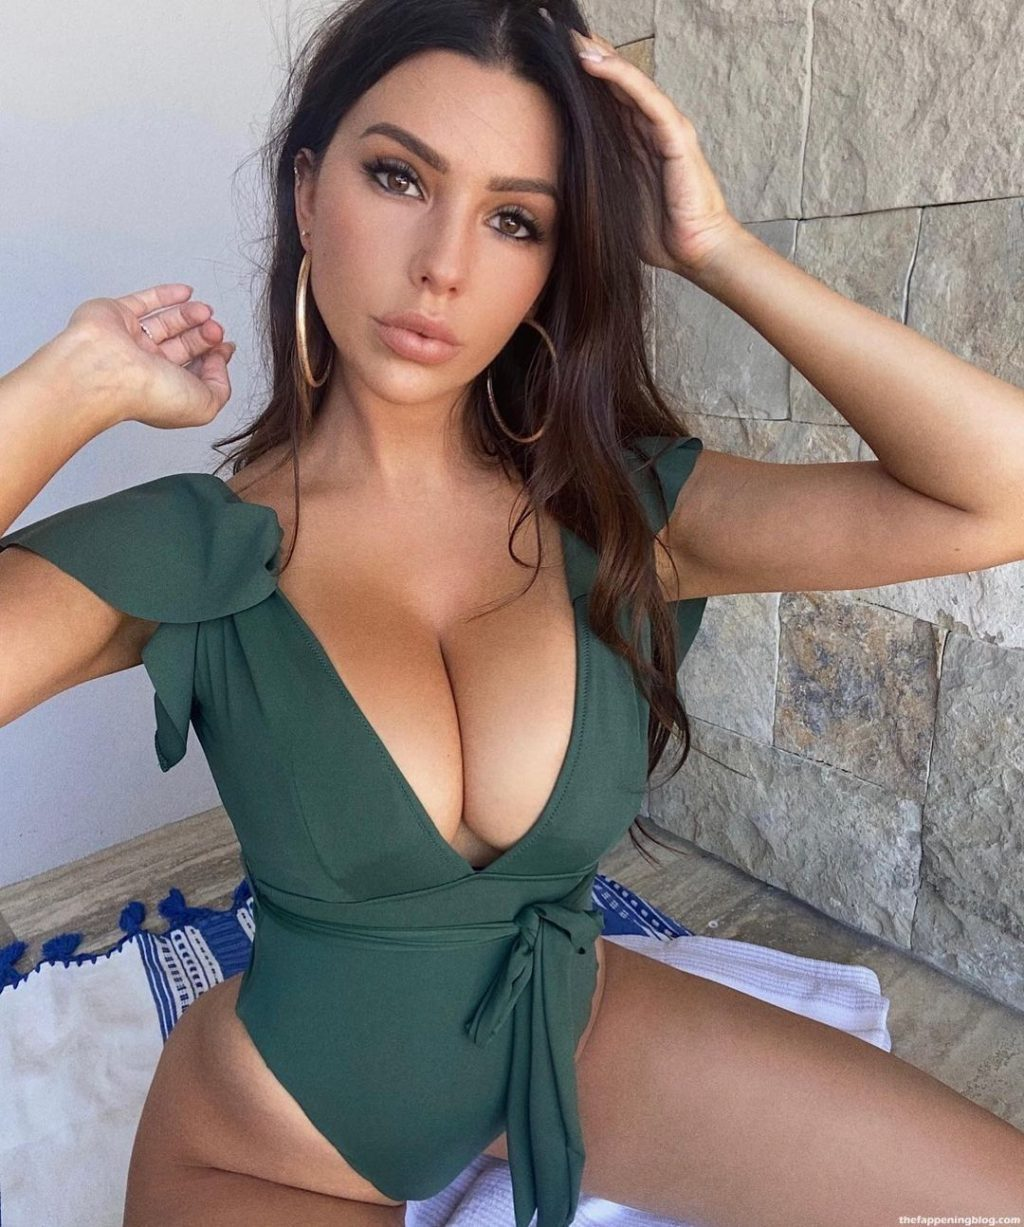 Paige Woolen Claims She Has Been 'Banned' From TikTok For 'Having BIG BOOBS' (53 Photos)